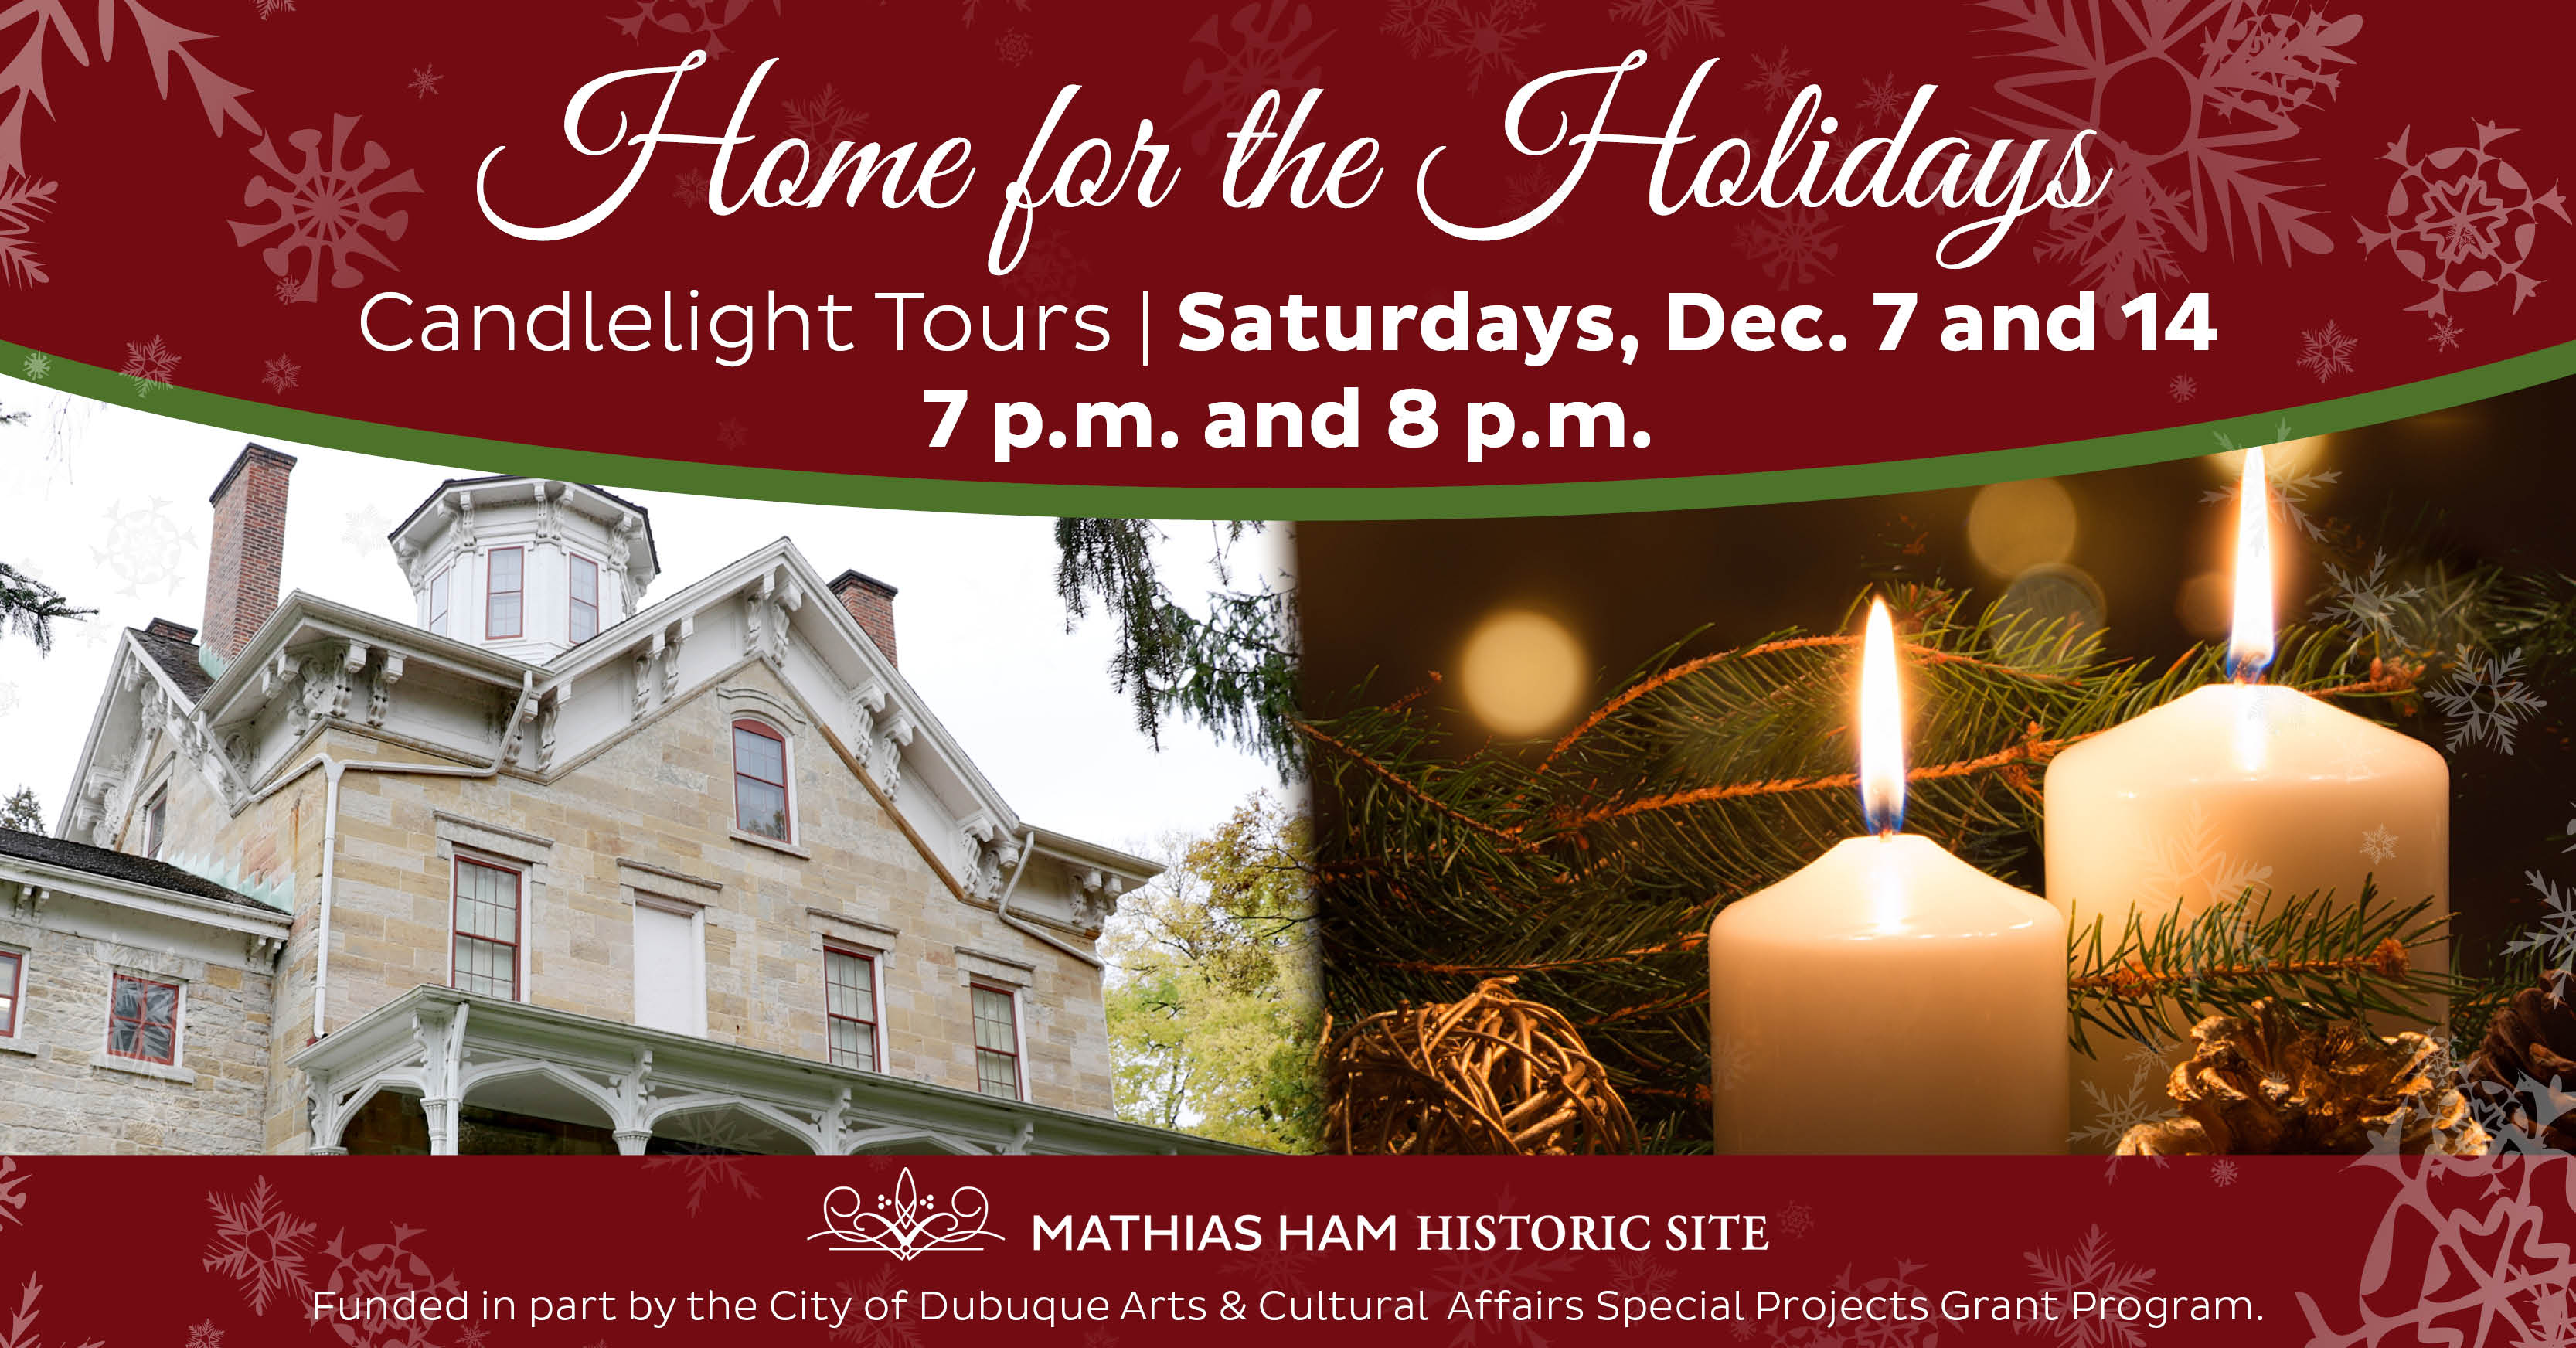 Home for the Holidays | Candlelight Tours (7 p.m. and 8 p.m.)